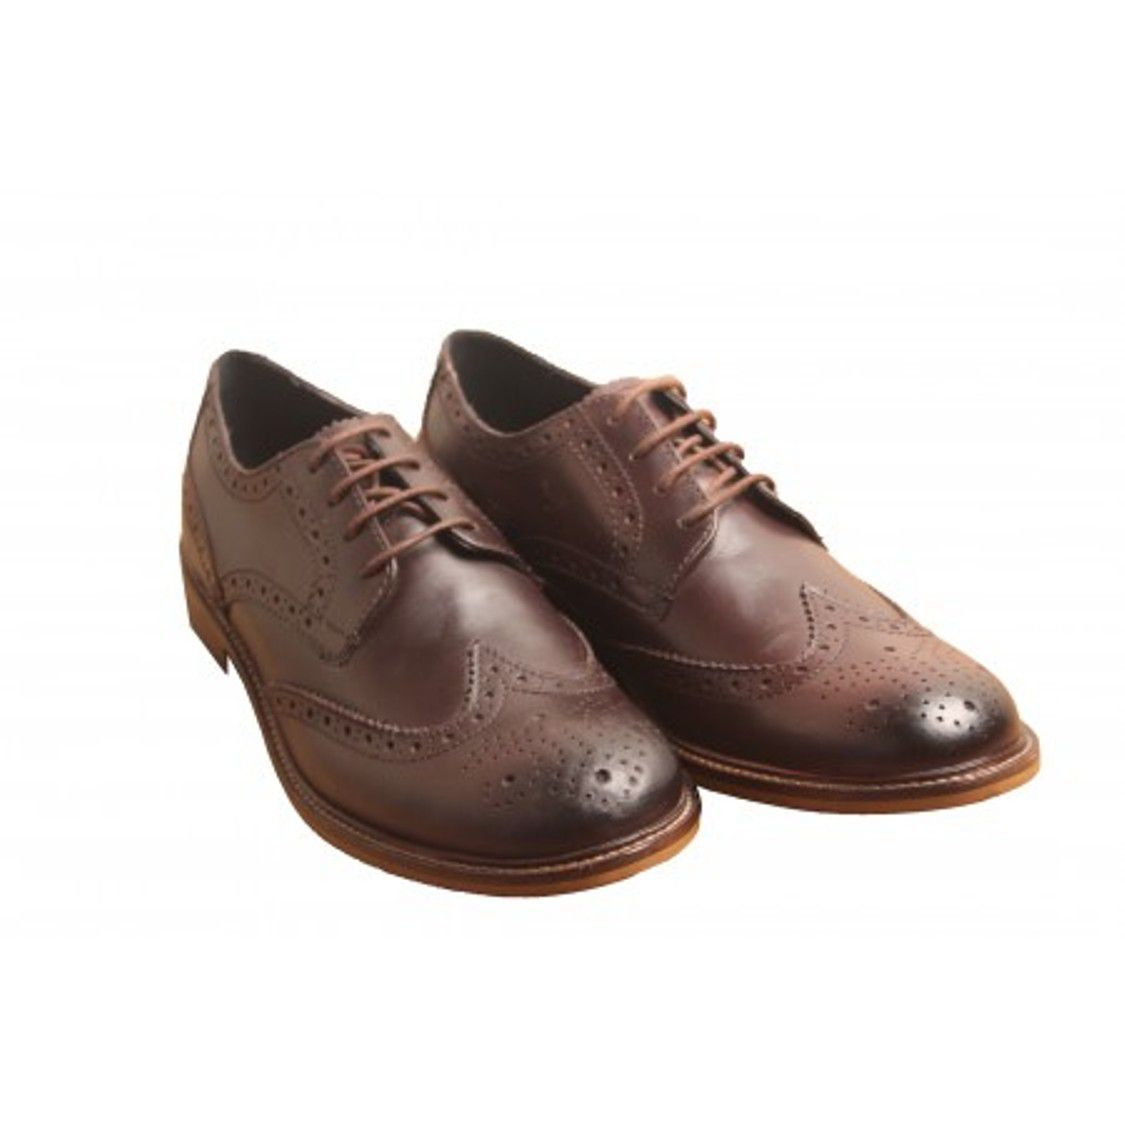 Aarmish Brogue Genuine Leather Brown Formal Shoes